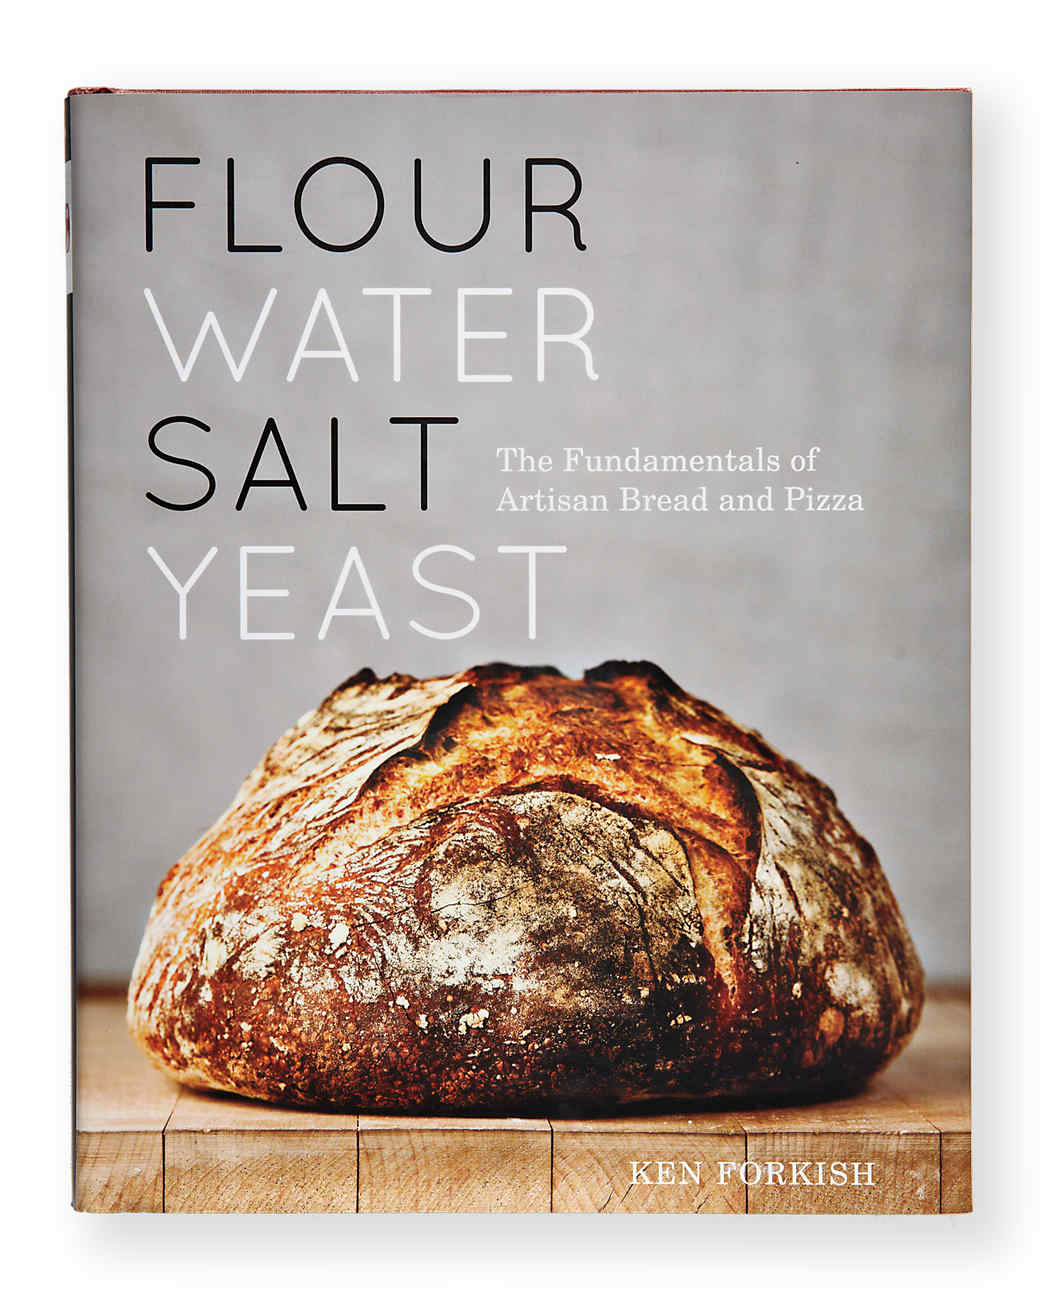 flour-water-salt-yeast-033-mld109433.jpg